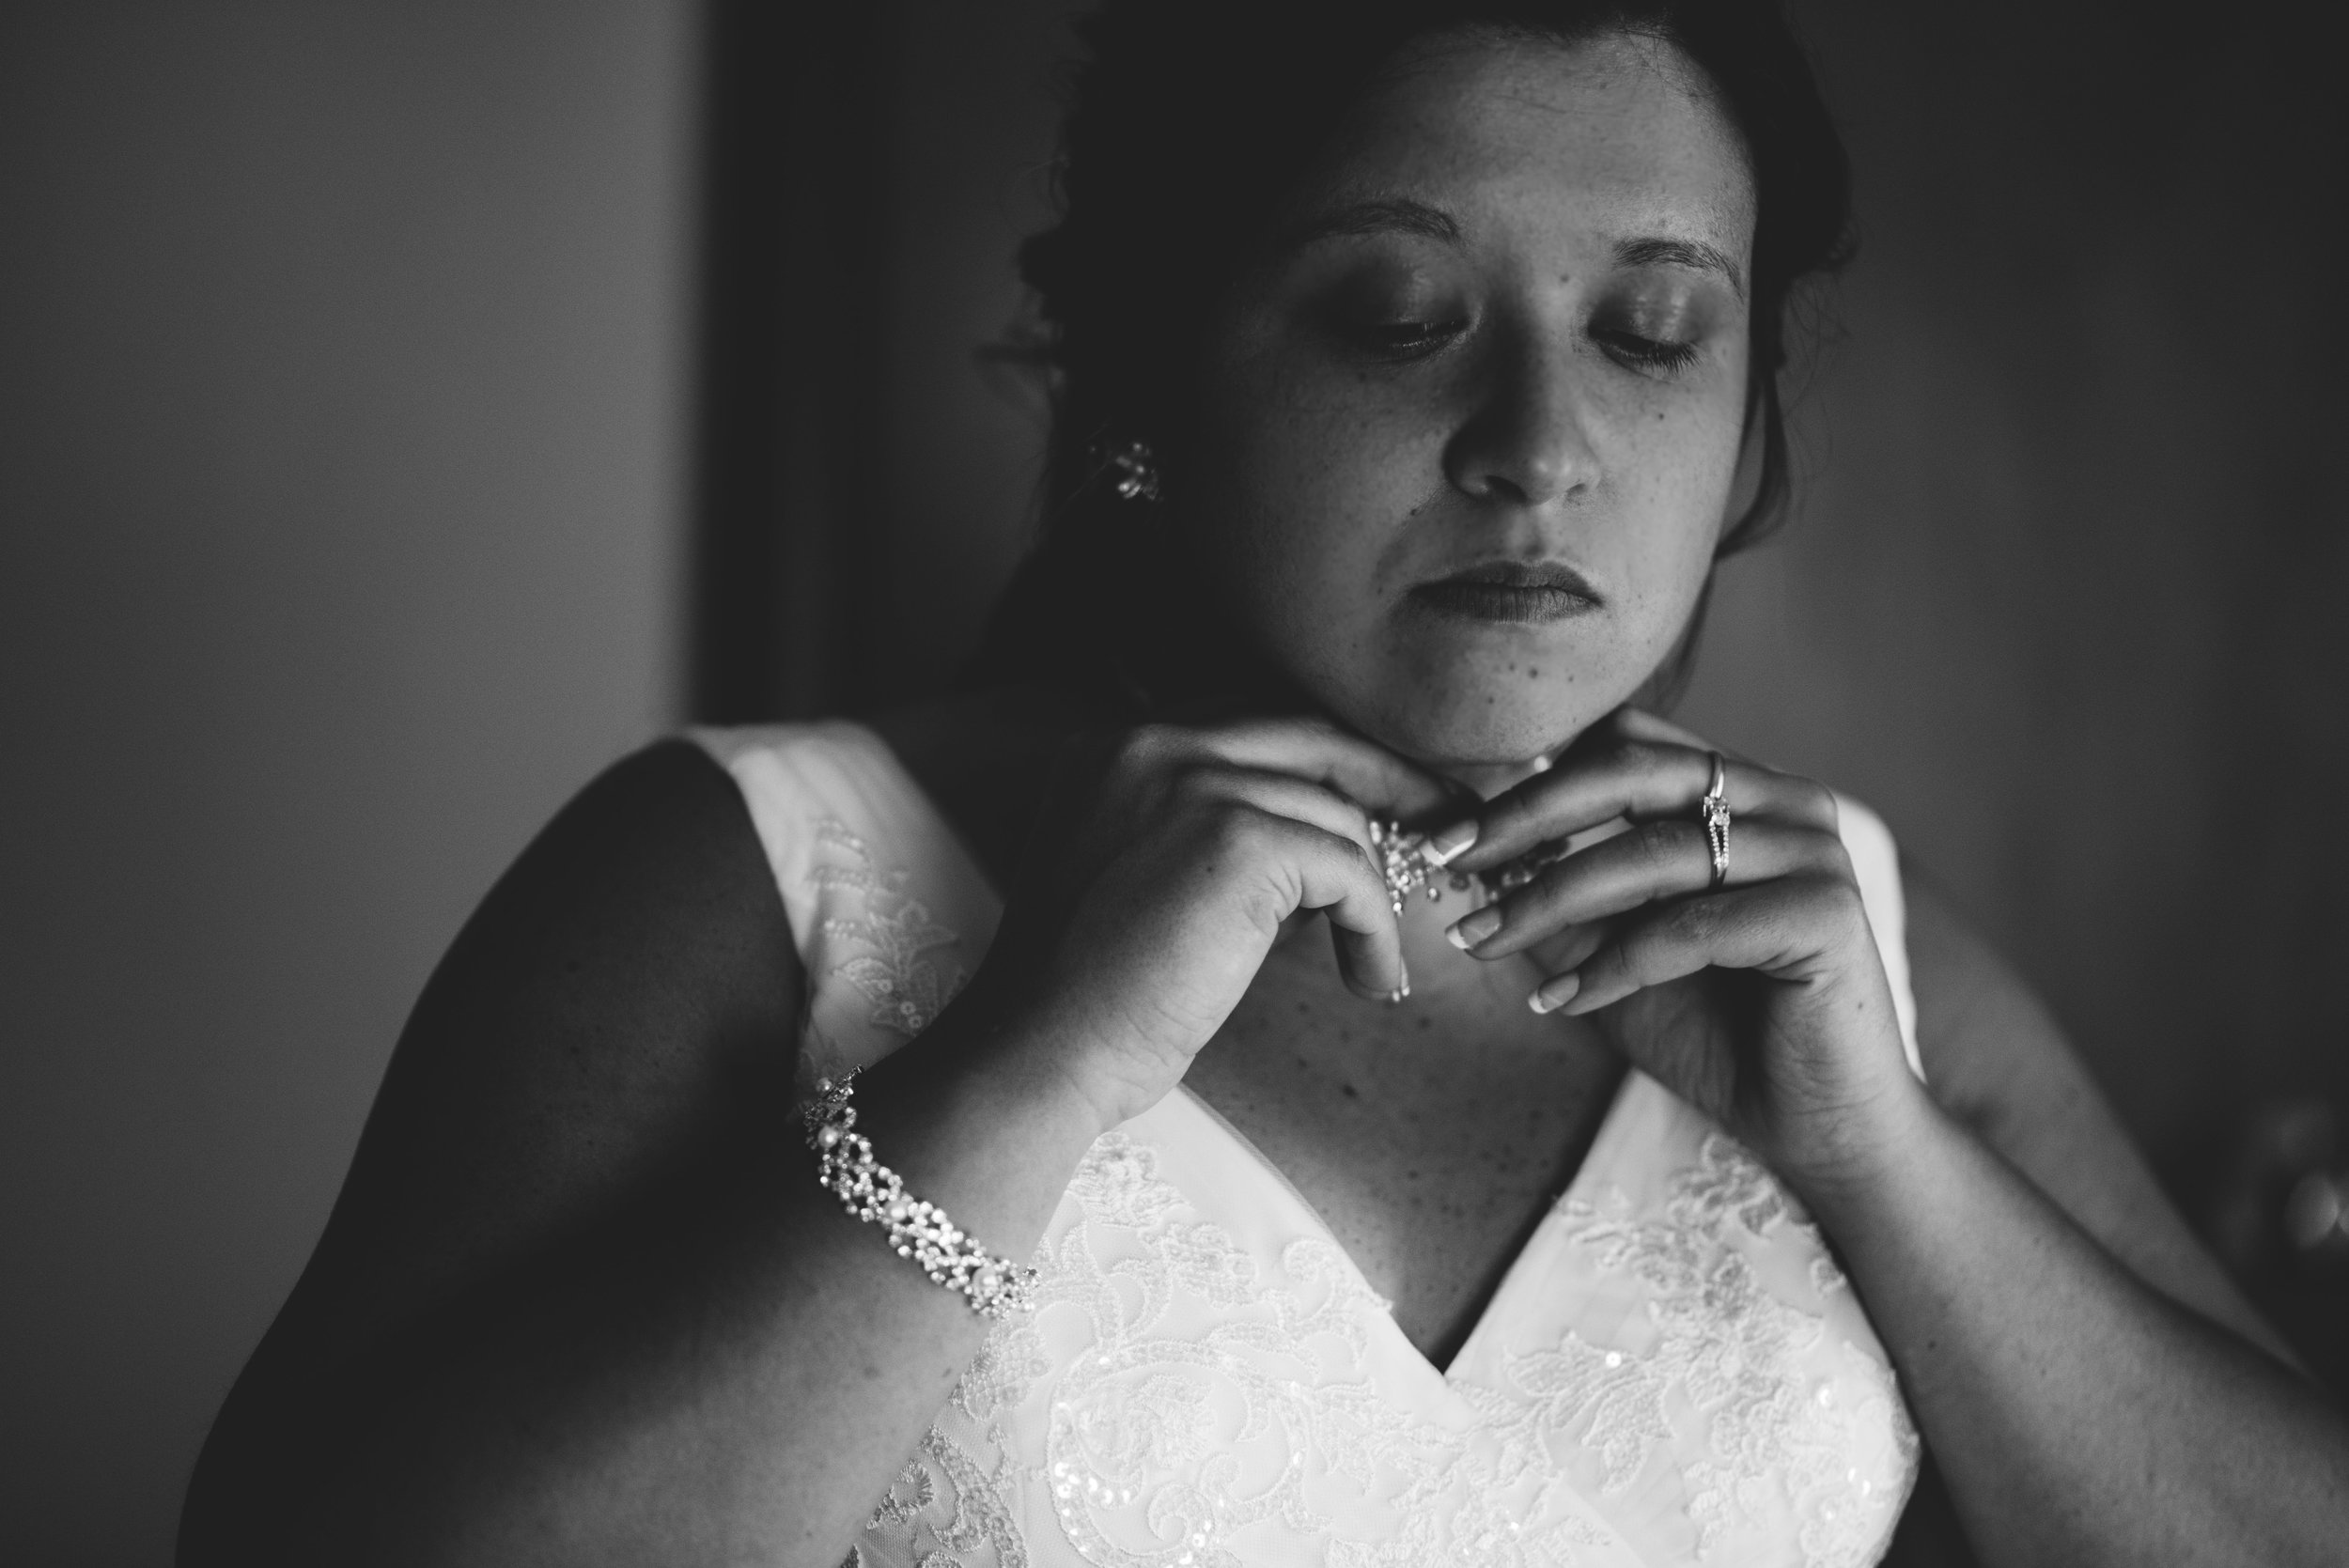 moody black and white candid photo of bride putting necklace on